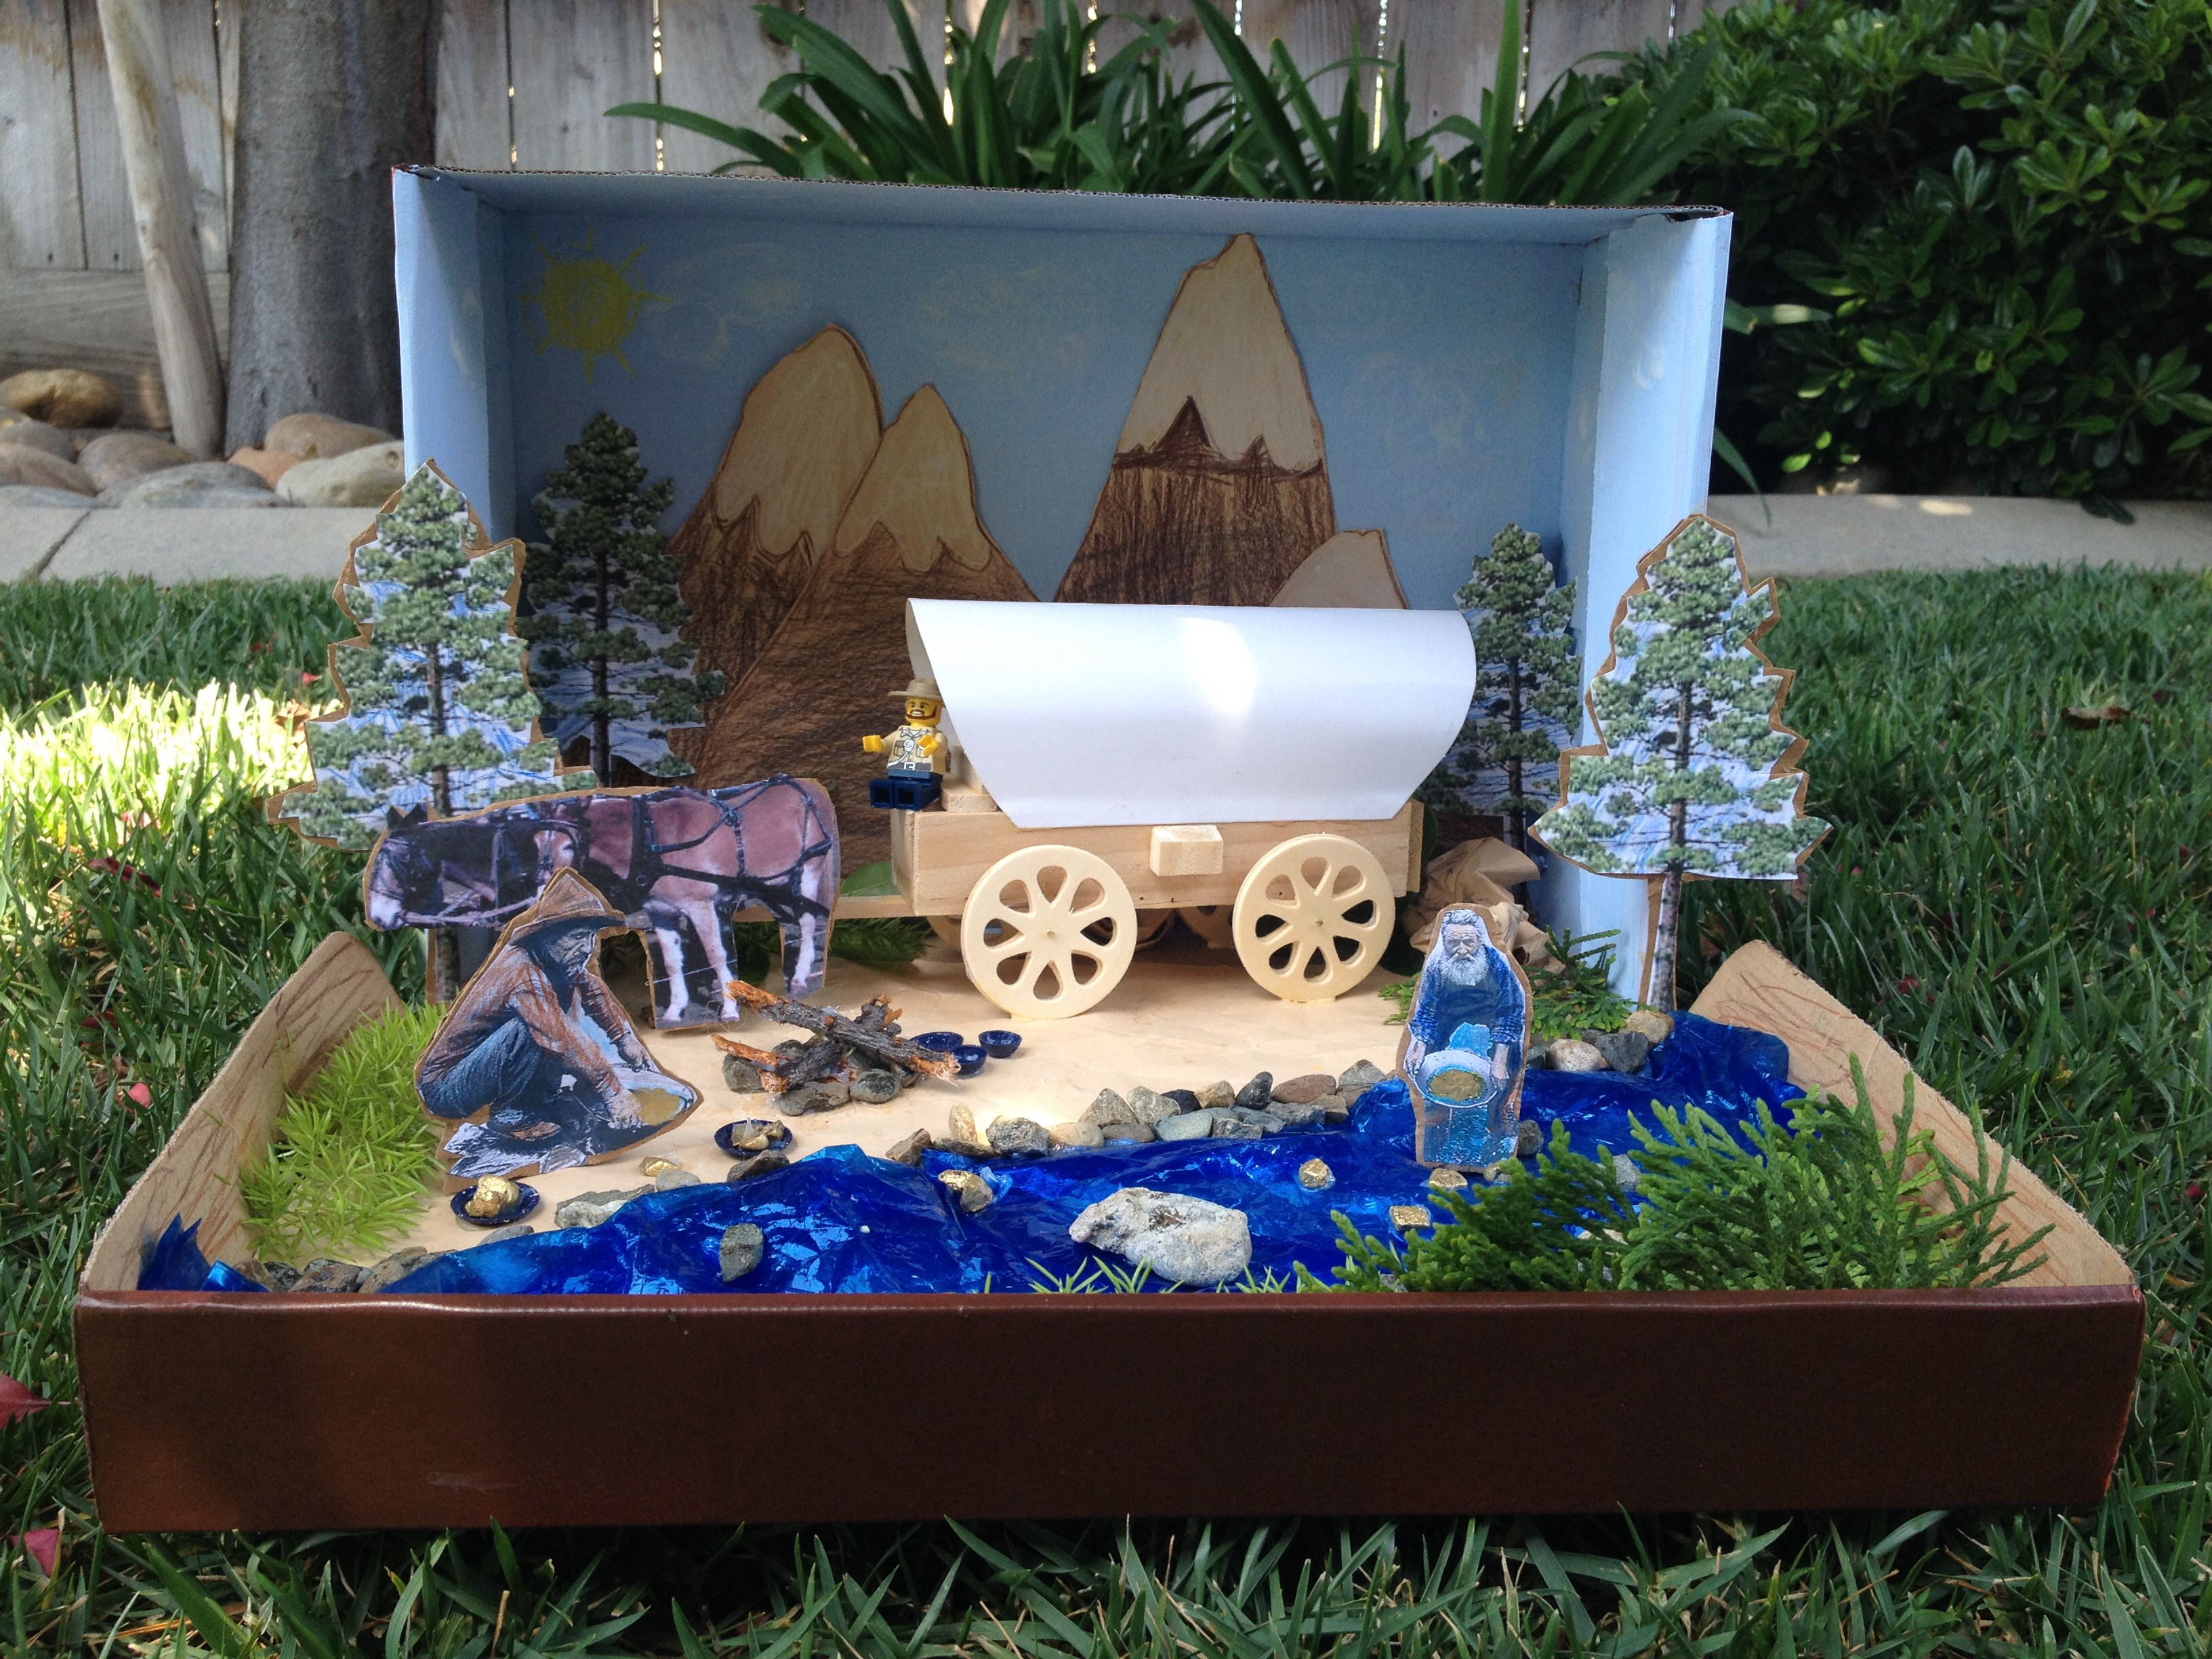 Jacob S California Gold Rush Project For The Water I